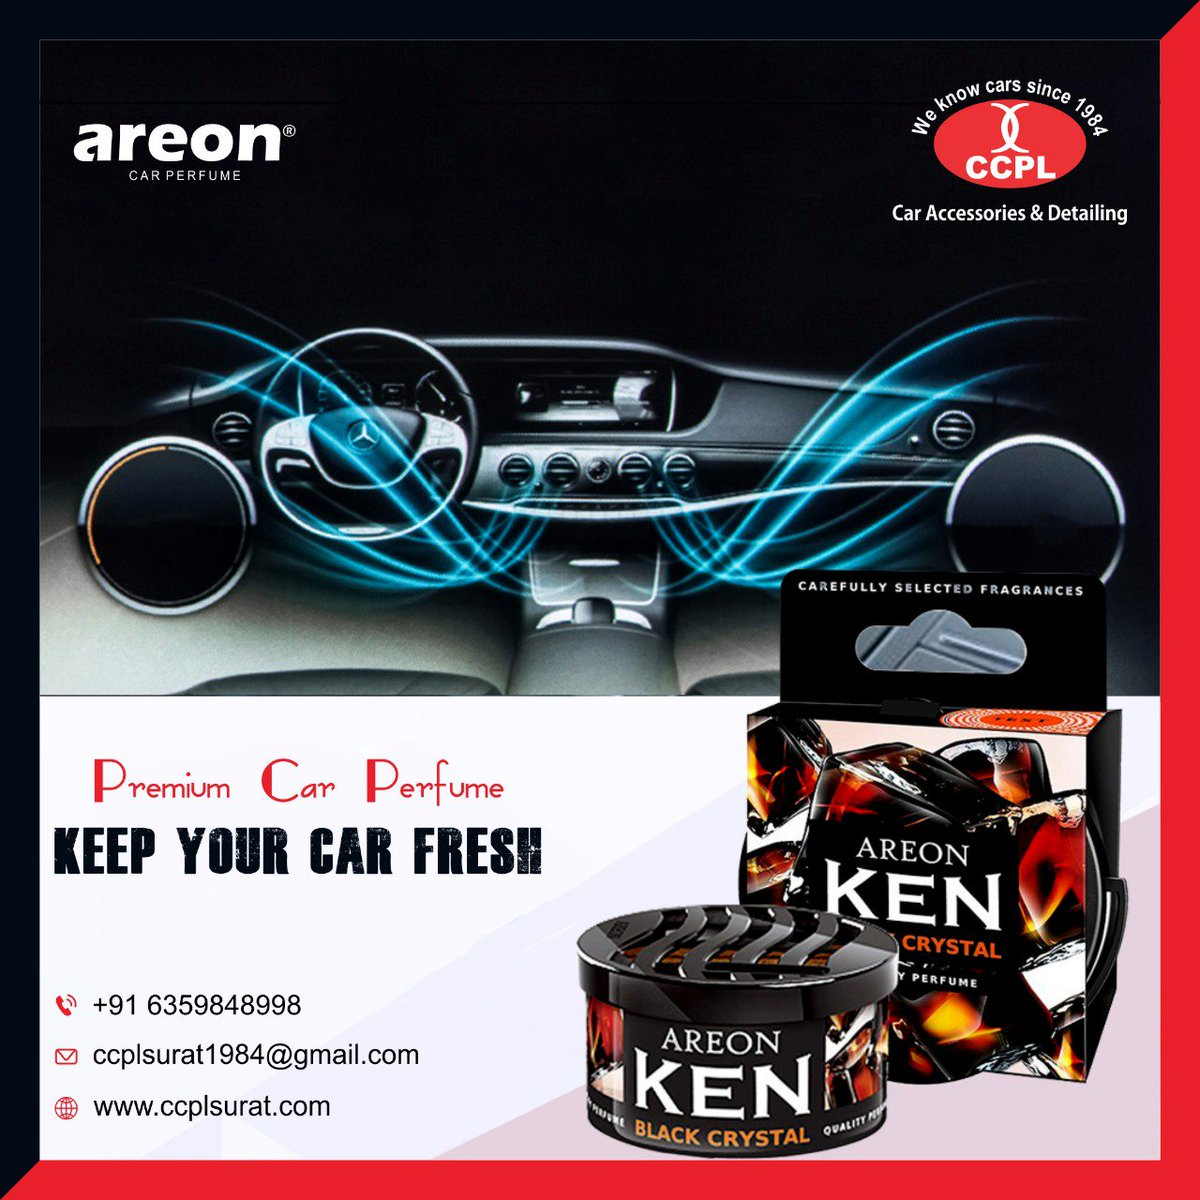 AREON FRESH premium car perfume  Keep your car fresh Available at @CcplSurat Dealership inquiry solicited from Gujarat. For more information mail us ccplsurat1984@gmail.com http://www.ccplsurat.com/  #carperfume #areonperfume #perfume